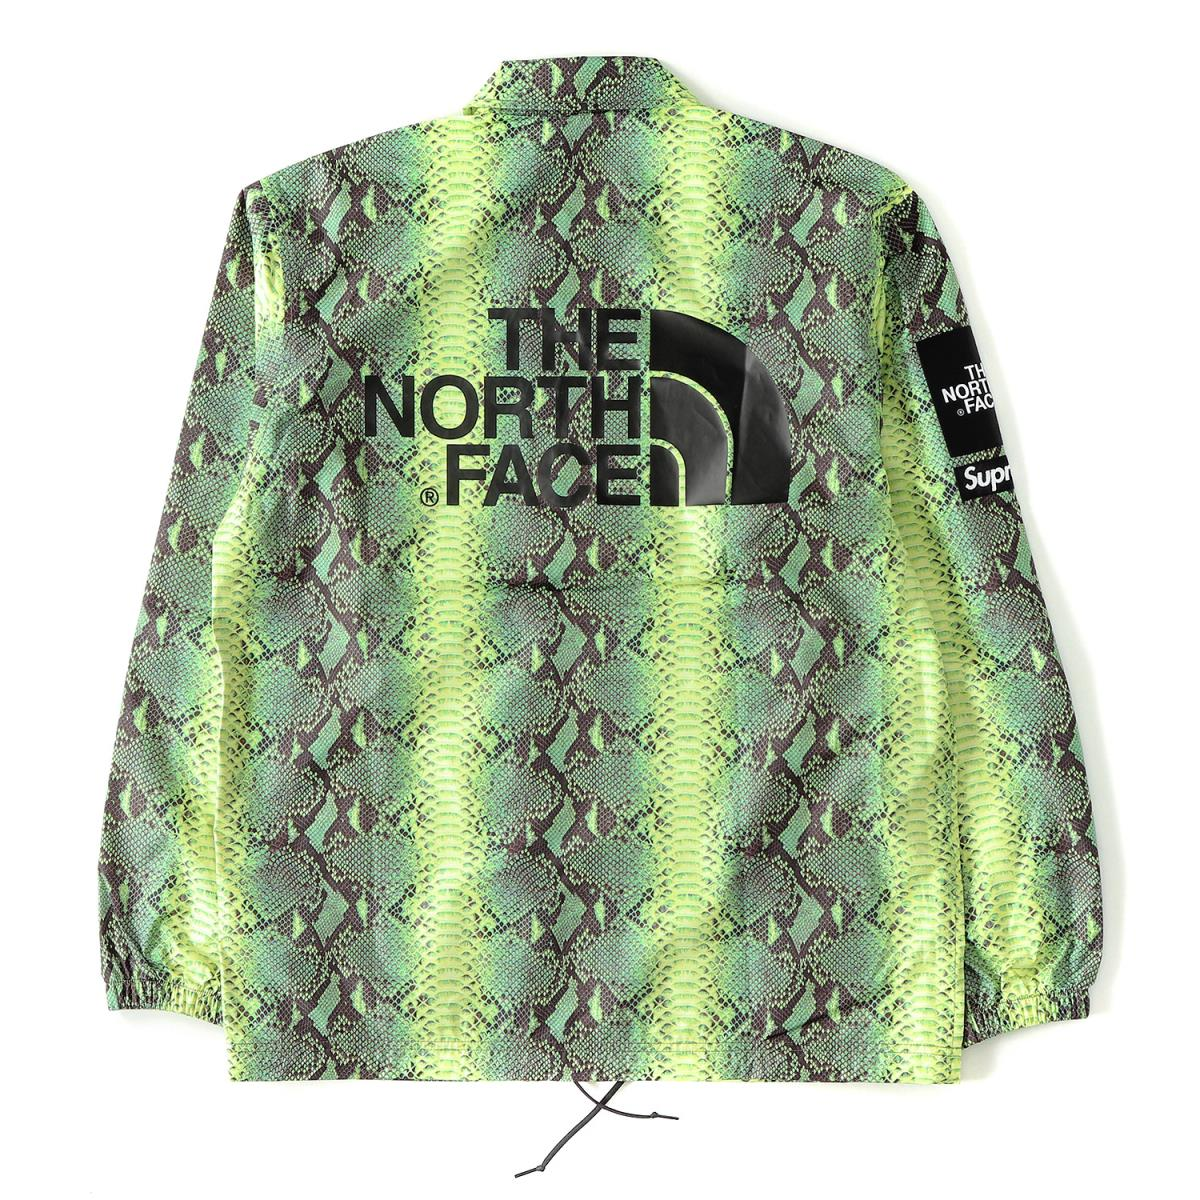 Supreme (シュプリーム) 18SS ×THE NORTH FACE スネーク柄コーチジャケット(Snake Coaches Jacket) モヒートグリーンスネーク S 【K1951】【あす楽☆対応可】